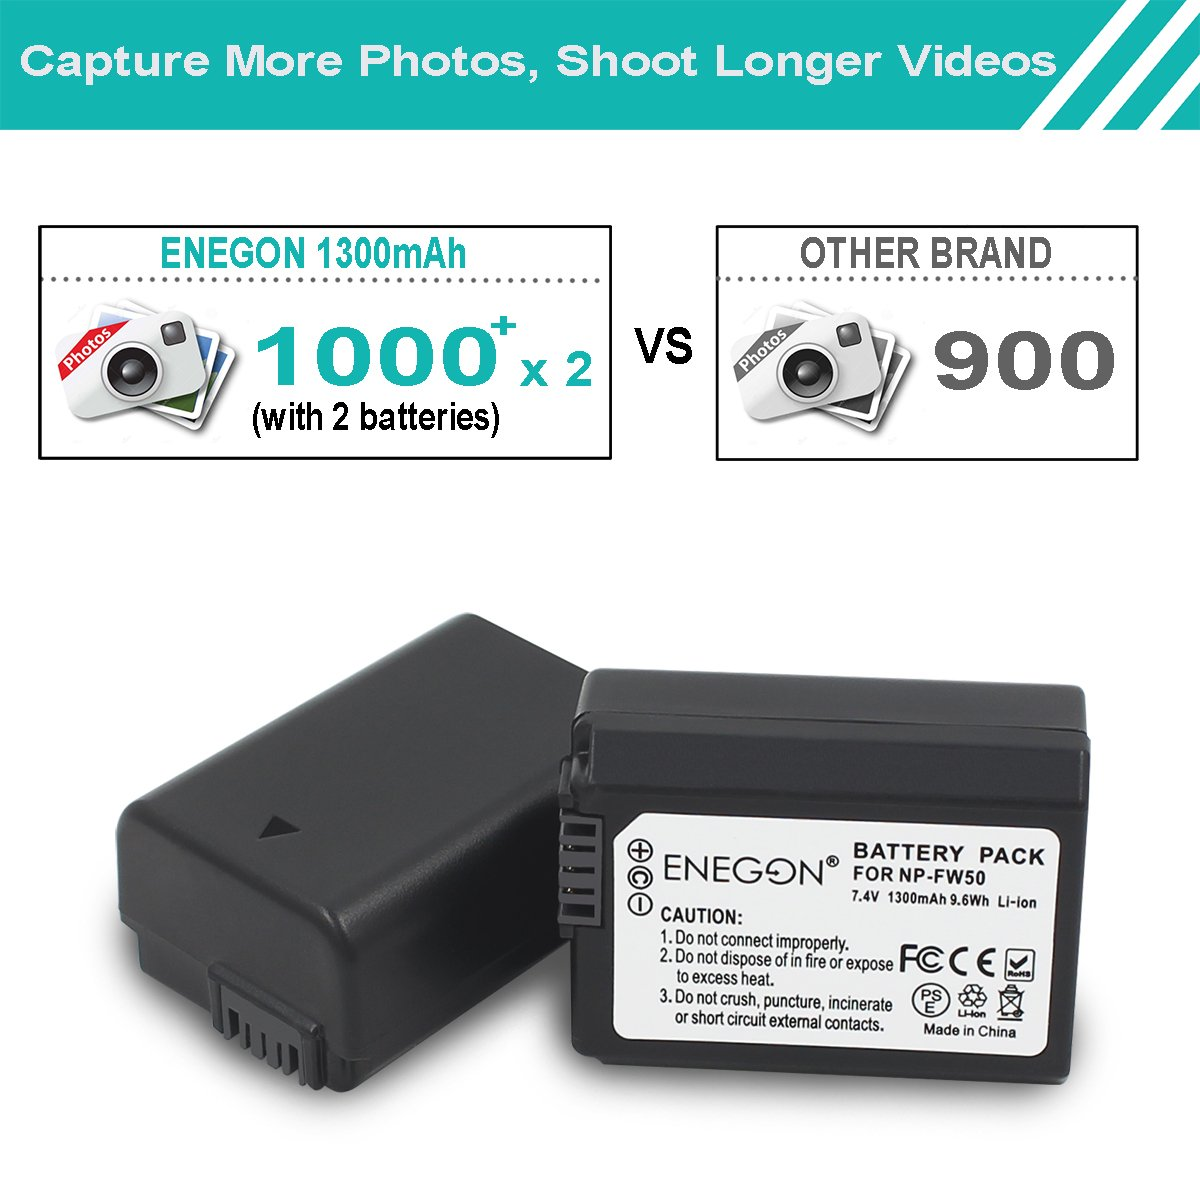 Np Fw50 Enegon Camera Battery 2 Pack And Rapid Dual Wasabi Power Charger For Sony Nex 3 5 7 Series Slt A Alpha More 100 Compatible